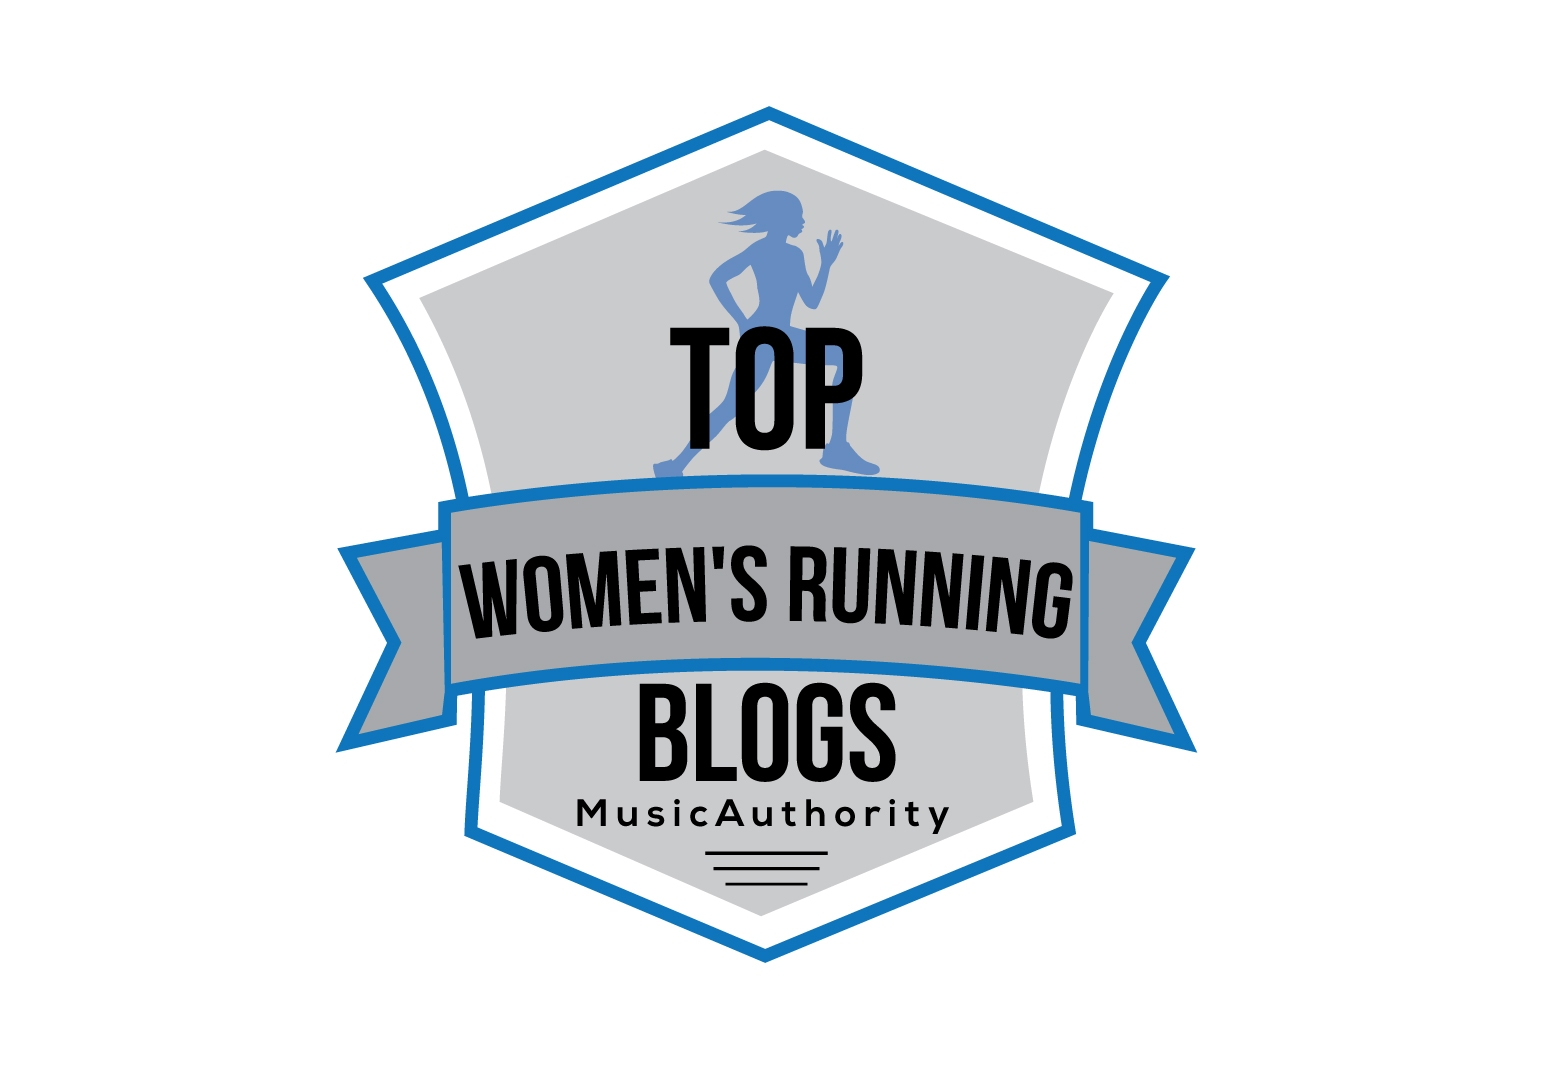 MusicAuthority's Top Women's Running Blogs of 2016